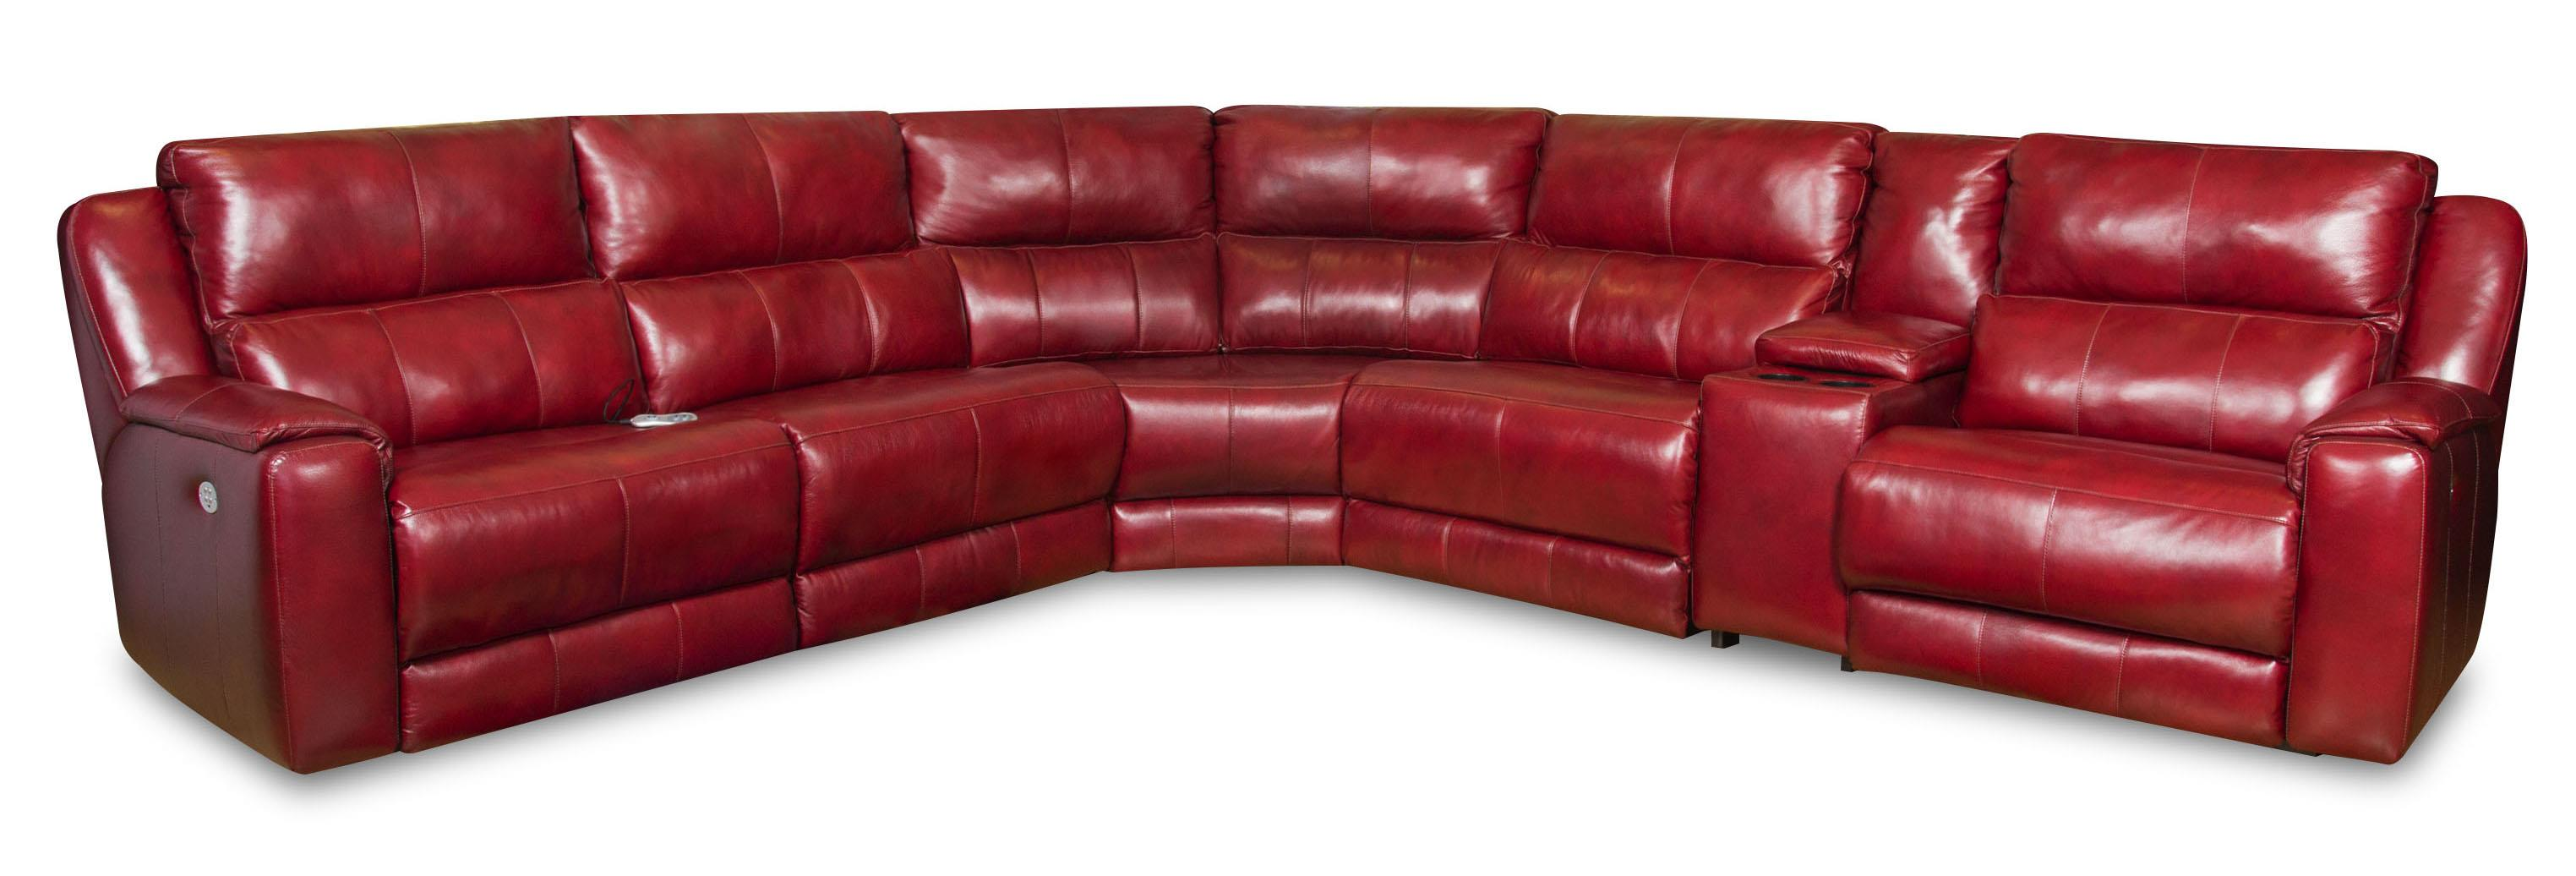 Dazzle Sectional w/ Cup Holders and Power Headrests by Southern Motion at Darvin Furniture